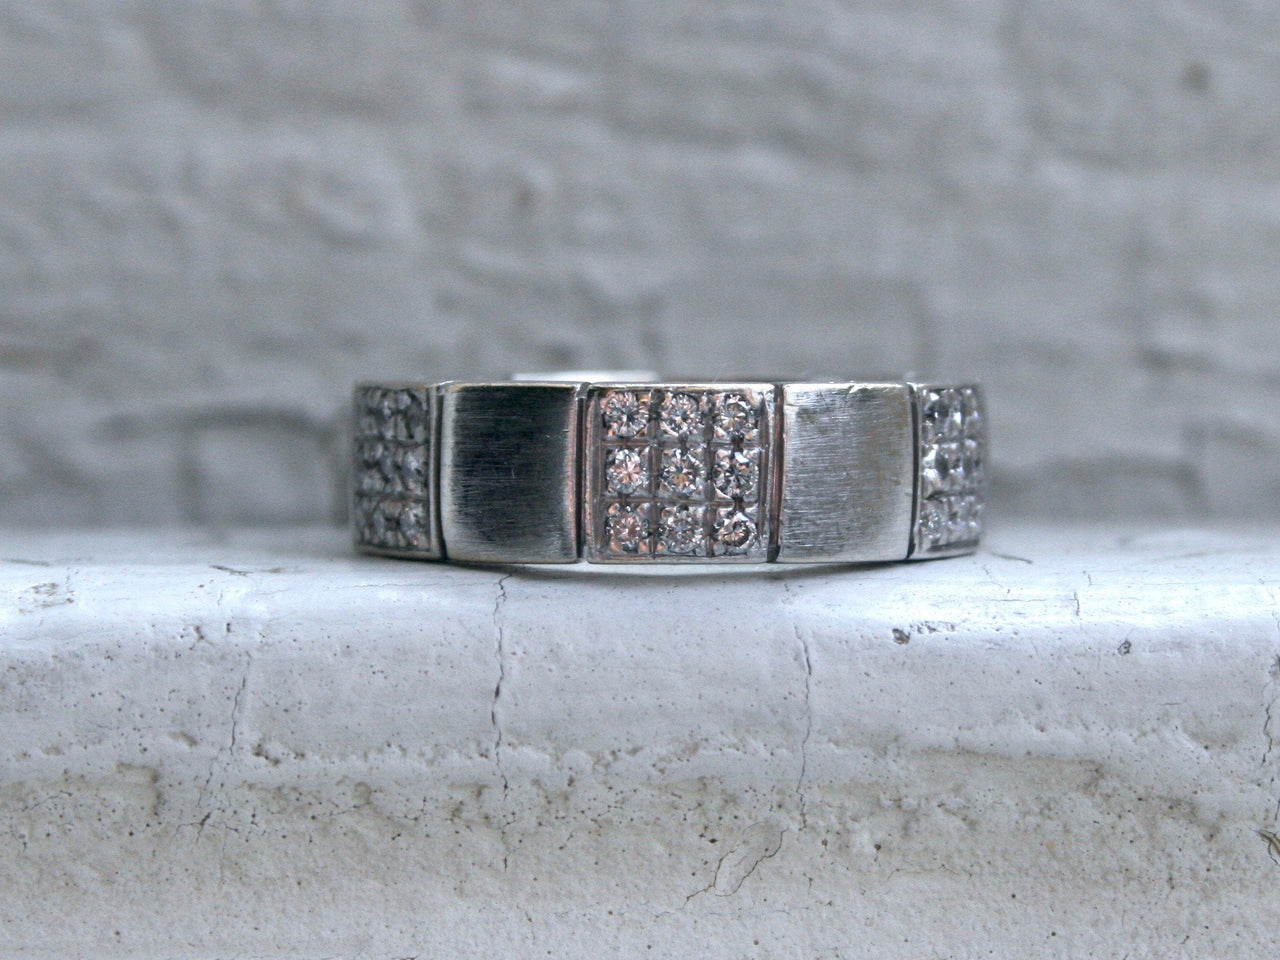 Classic Men's Vintage 18K White Gold Pave Diamond Wedding Band - 0.54ct.